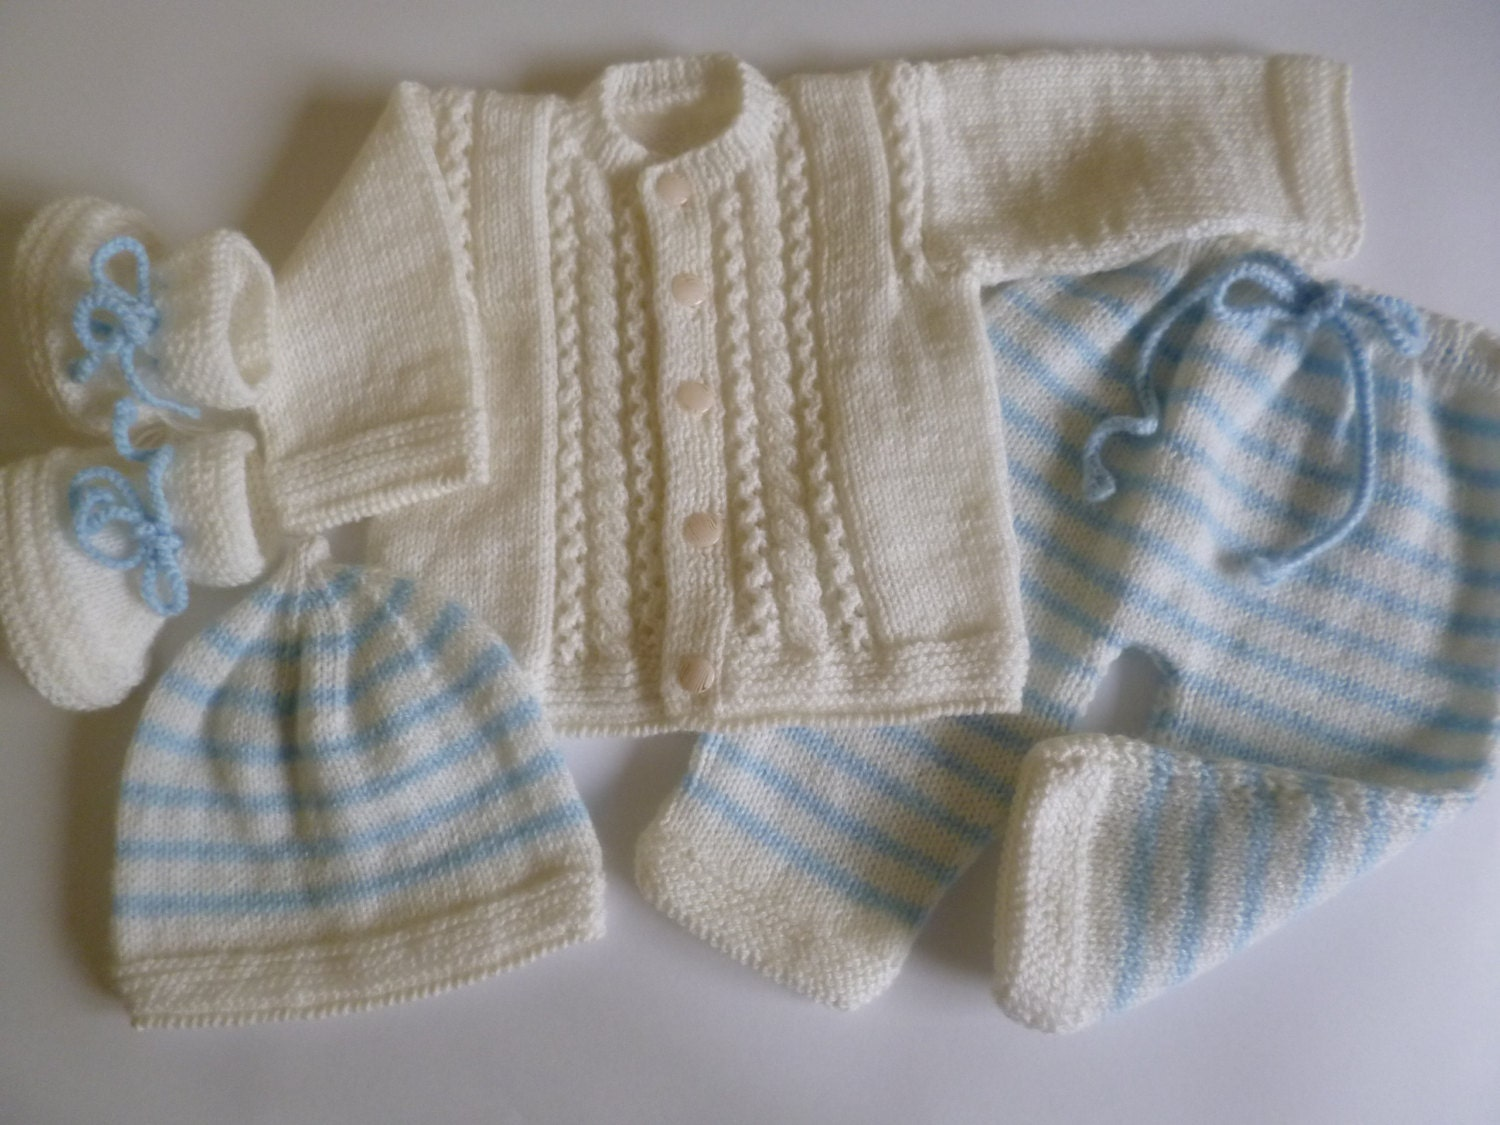 JuneBee Baby, Inc. specializes in fair trade handmade Cotton Bamboo baby clothes.